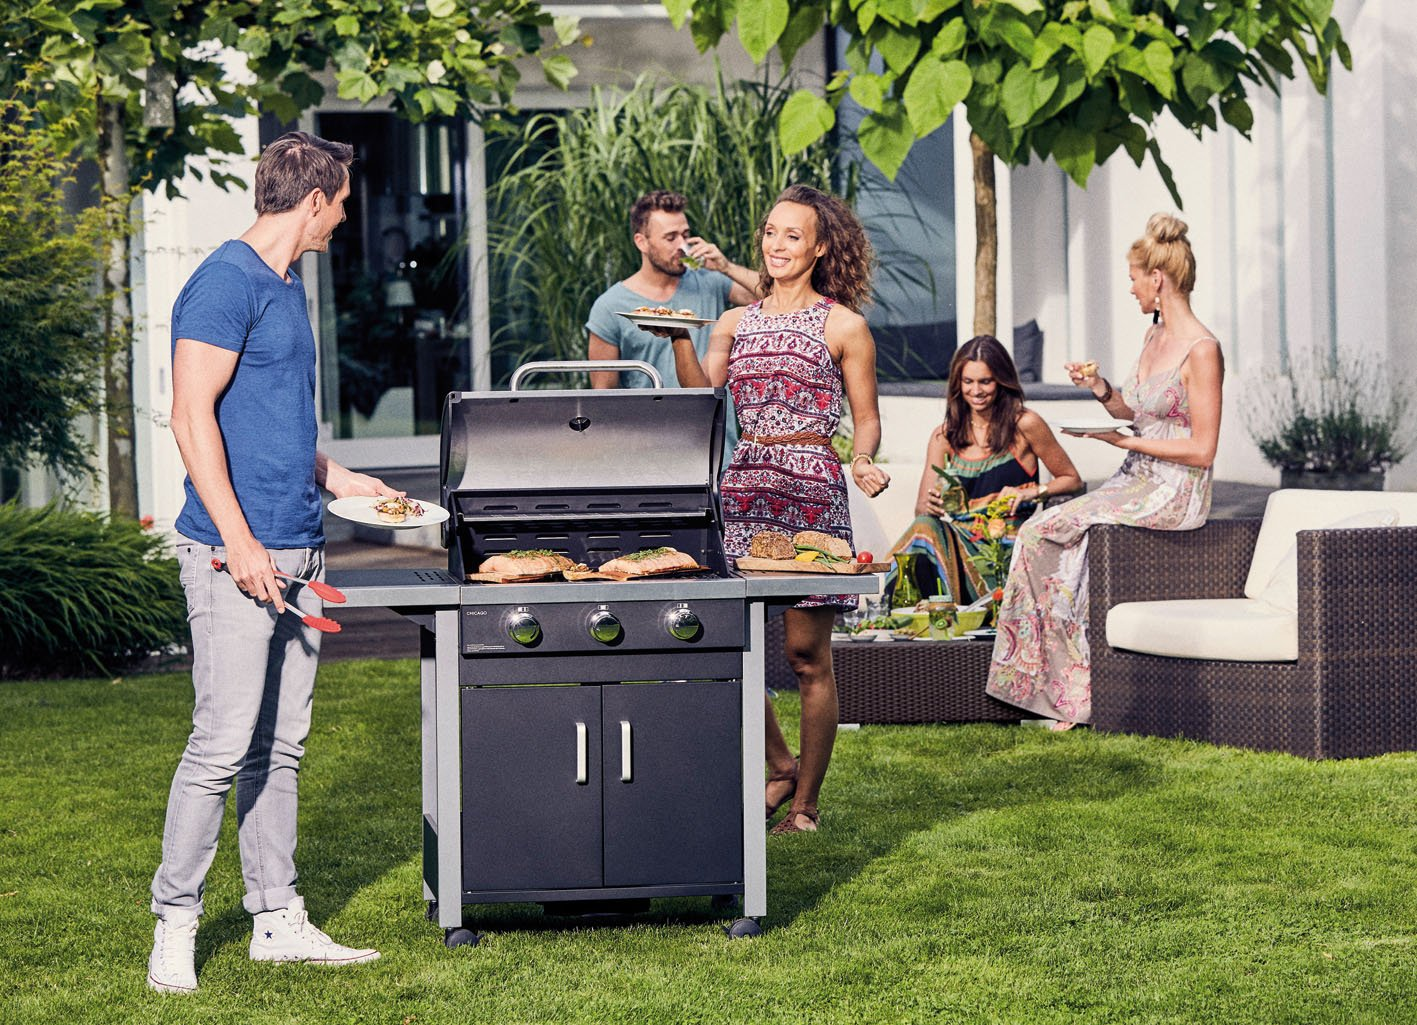 Enders Gasgrill Anleitung : Pulled pork vom gasgrill die anleitung sizzlebrothers